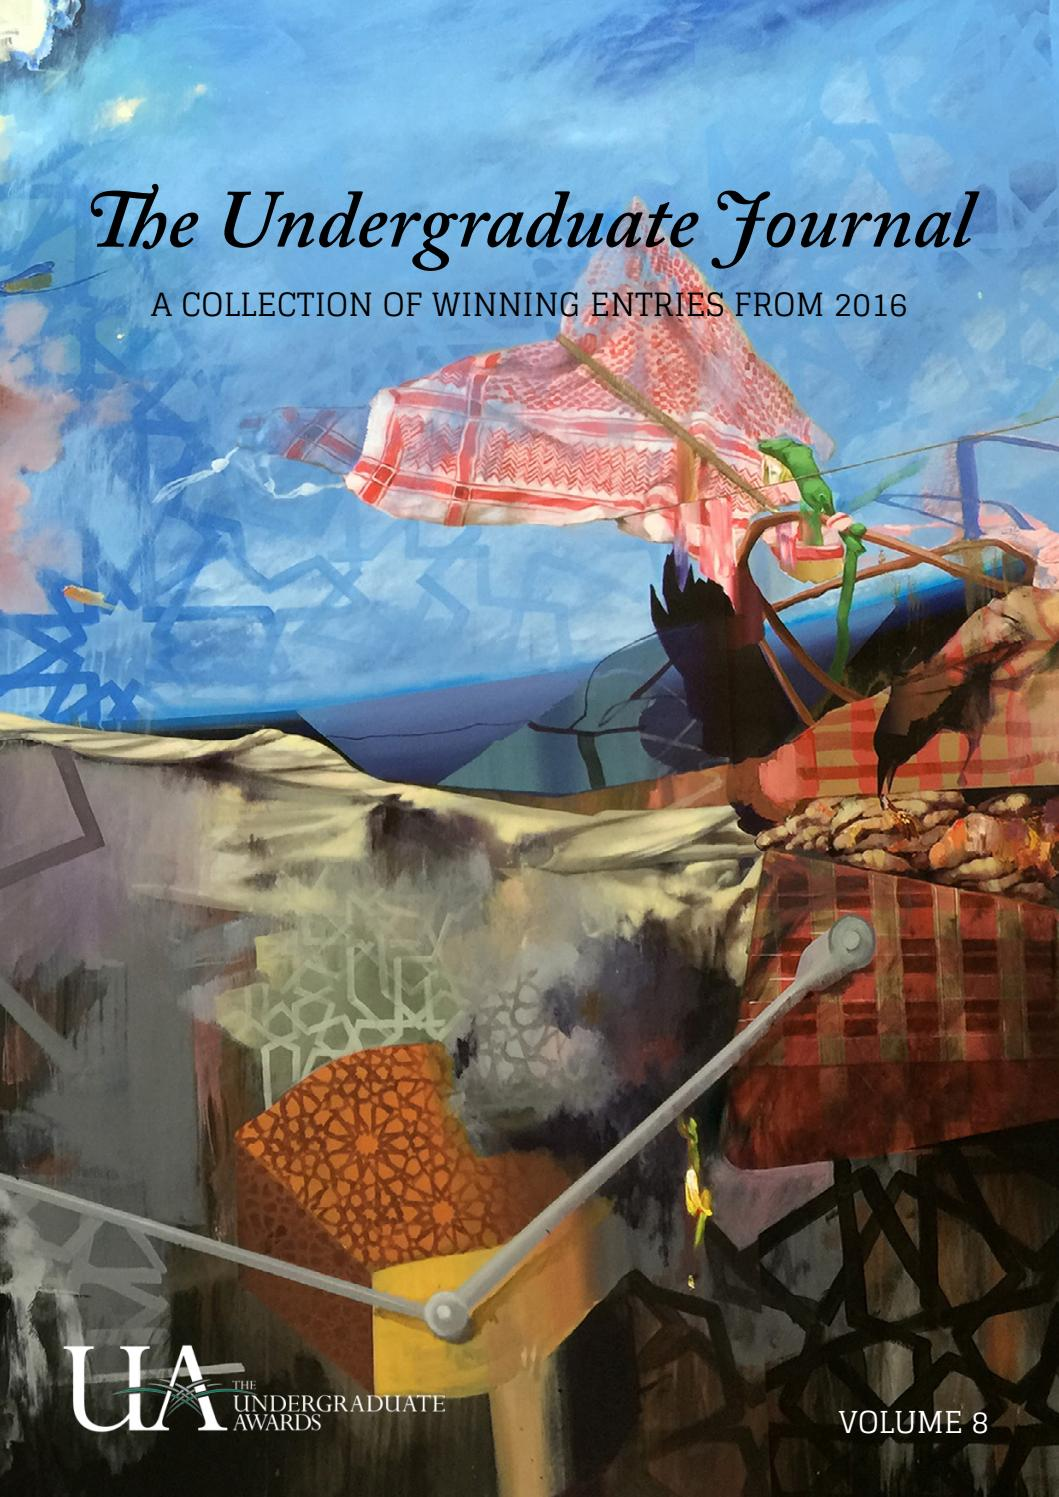 Undergraduate Journal Vol 4 By The Awards Issuu 2014 Ram 7 Pin Wire Diagram